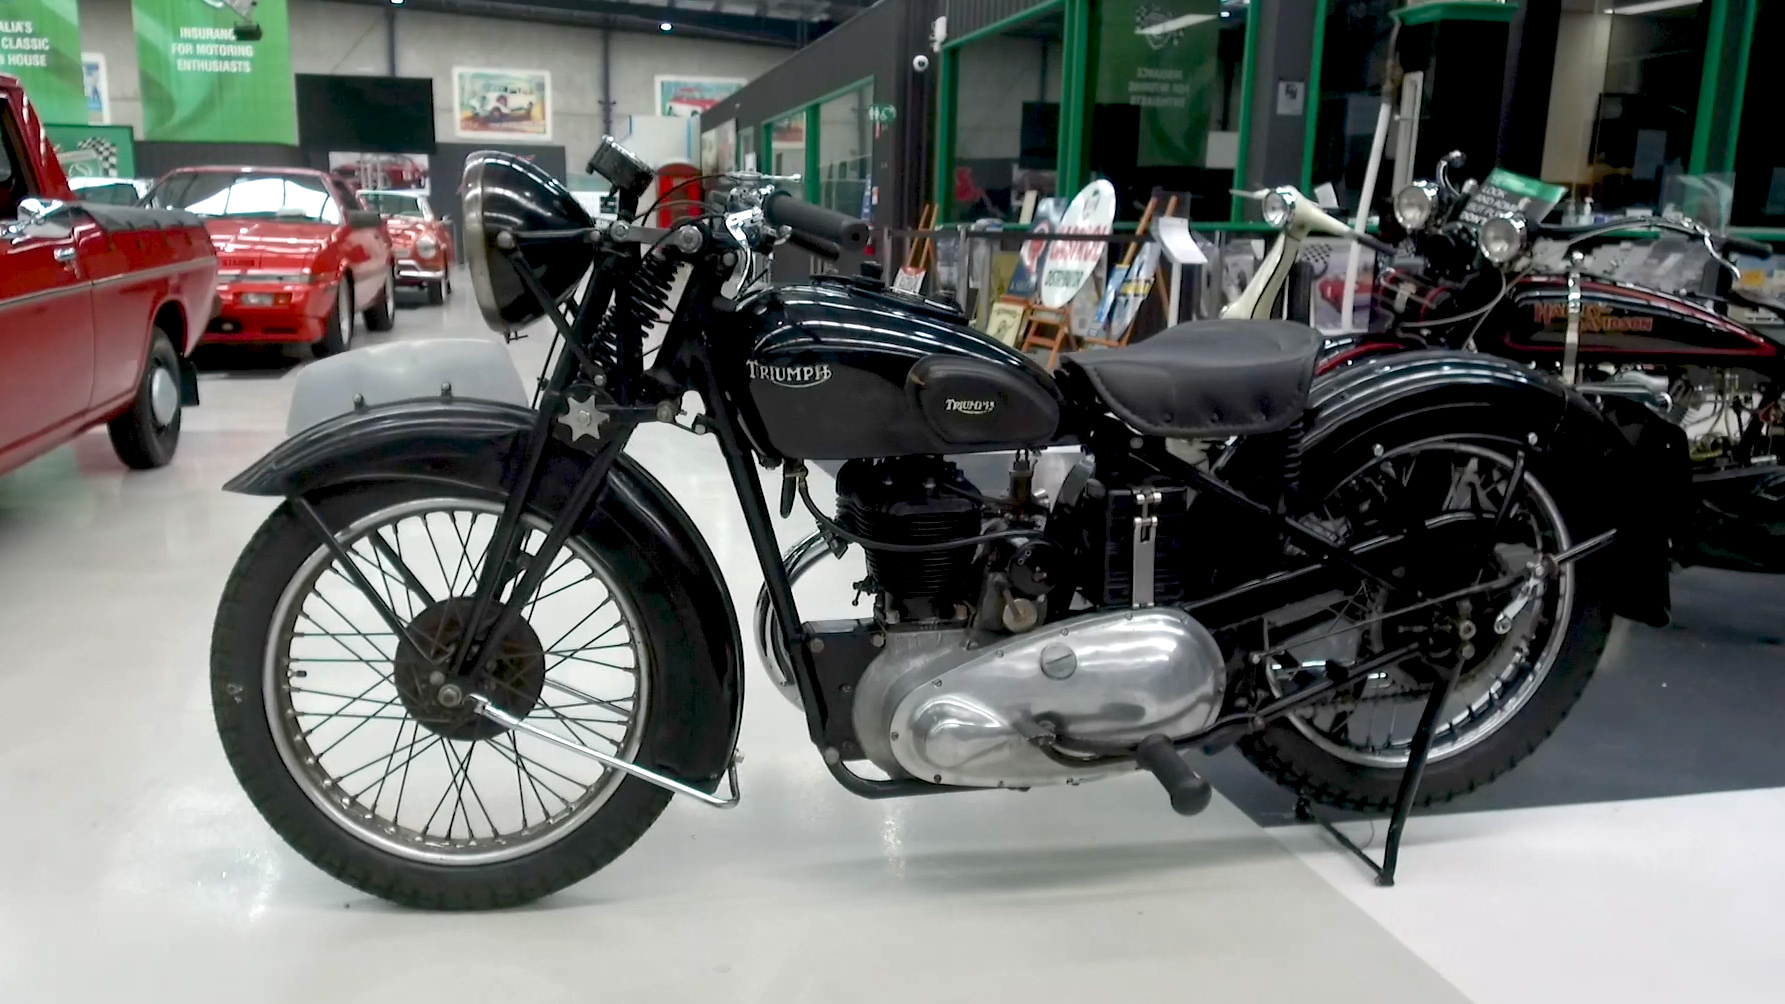 1939 Triumph 6S 600SV (Solo) Motorcycle - 2021 Shannons Summer Timed Online Auction